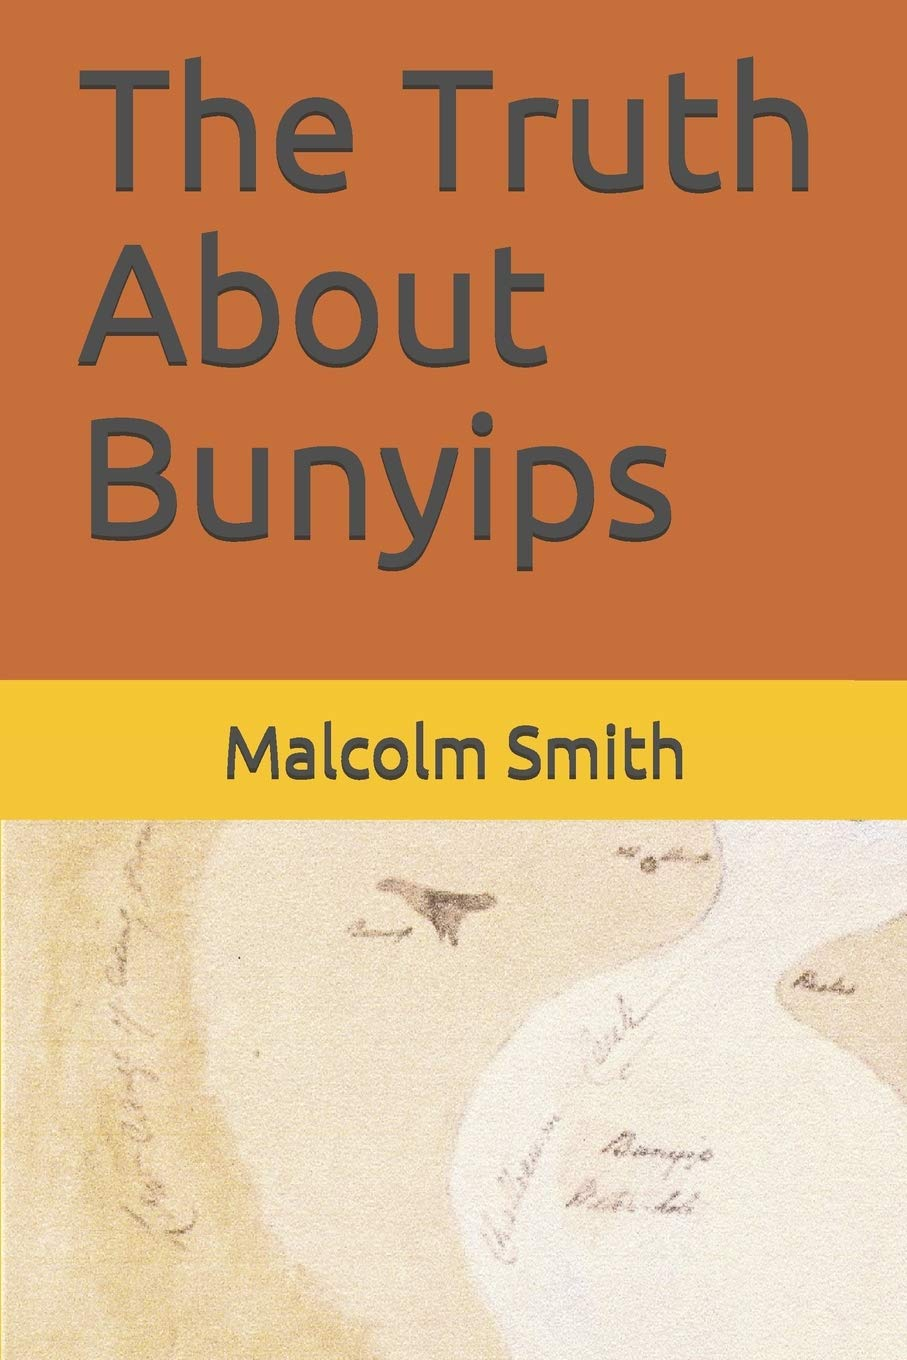 The Truth About Bunyips